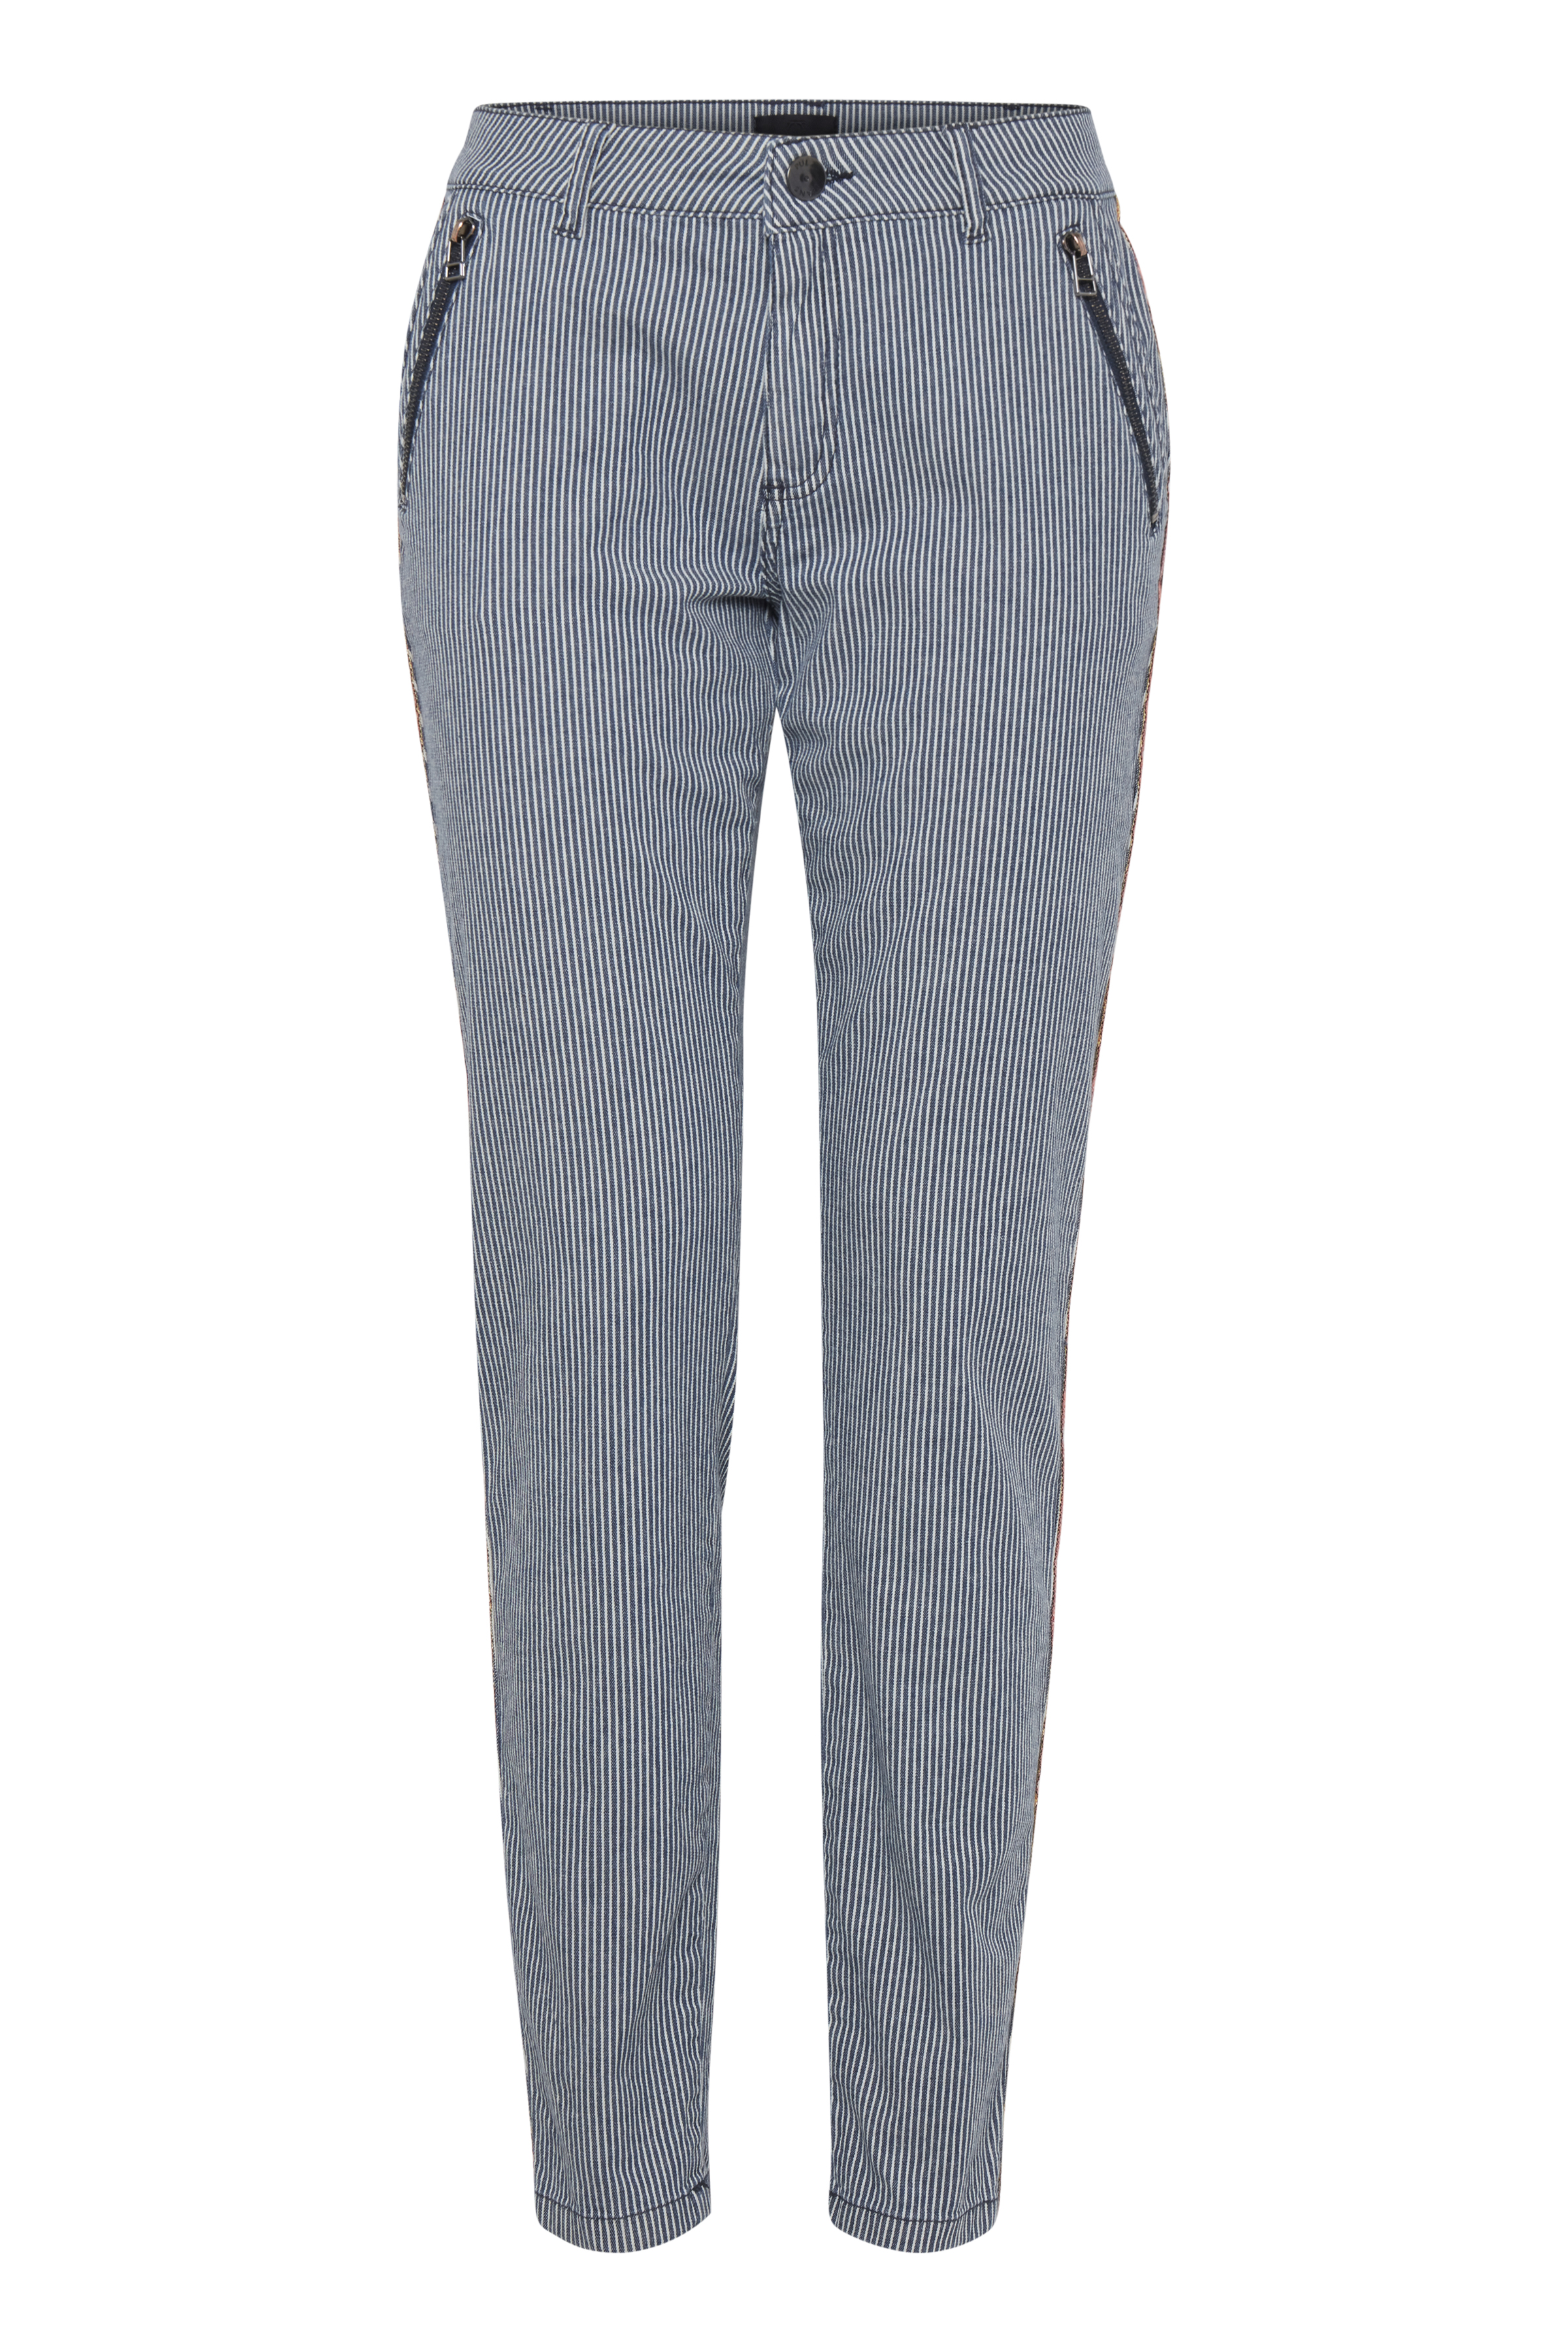 Image of Pulz Jeans Dame Casual bukser - Sort/off-white